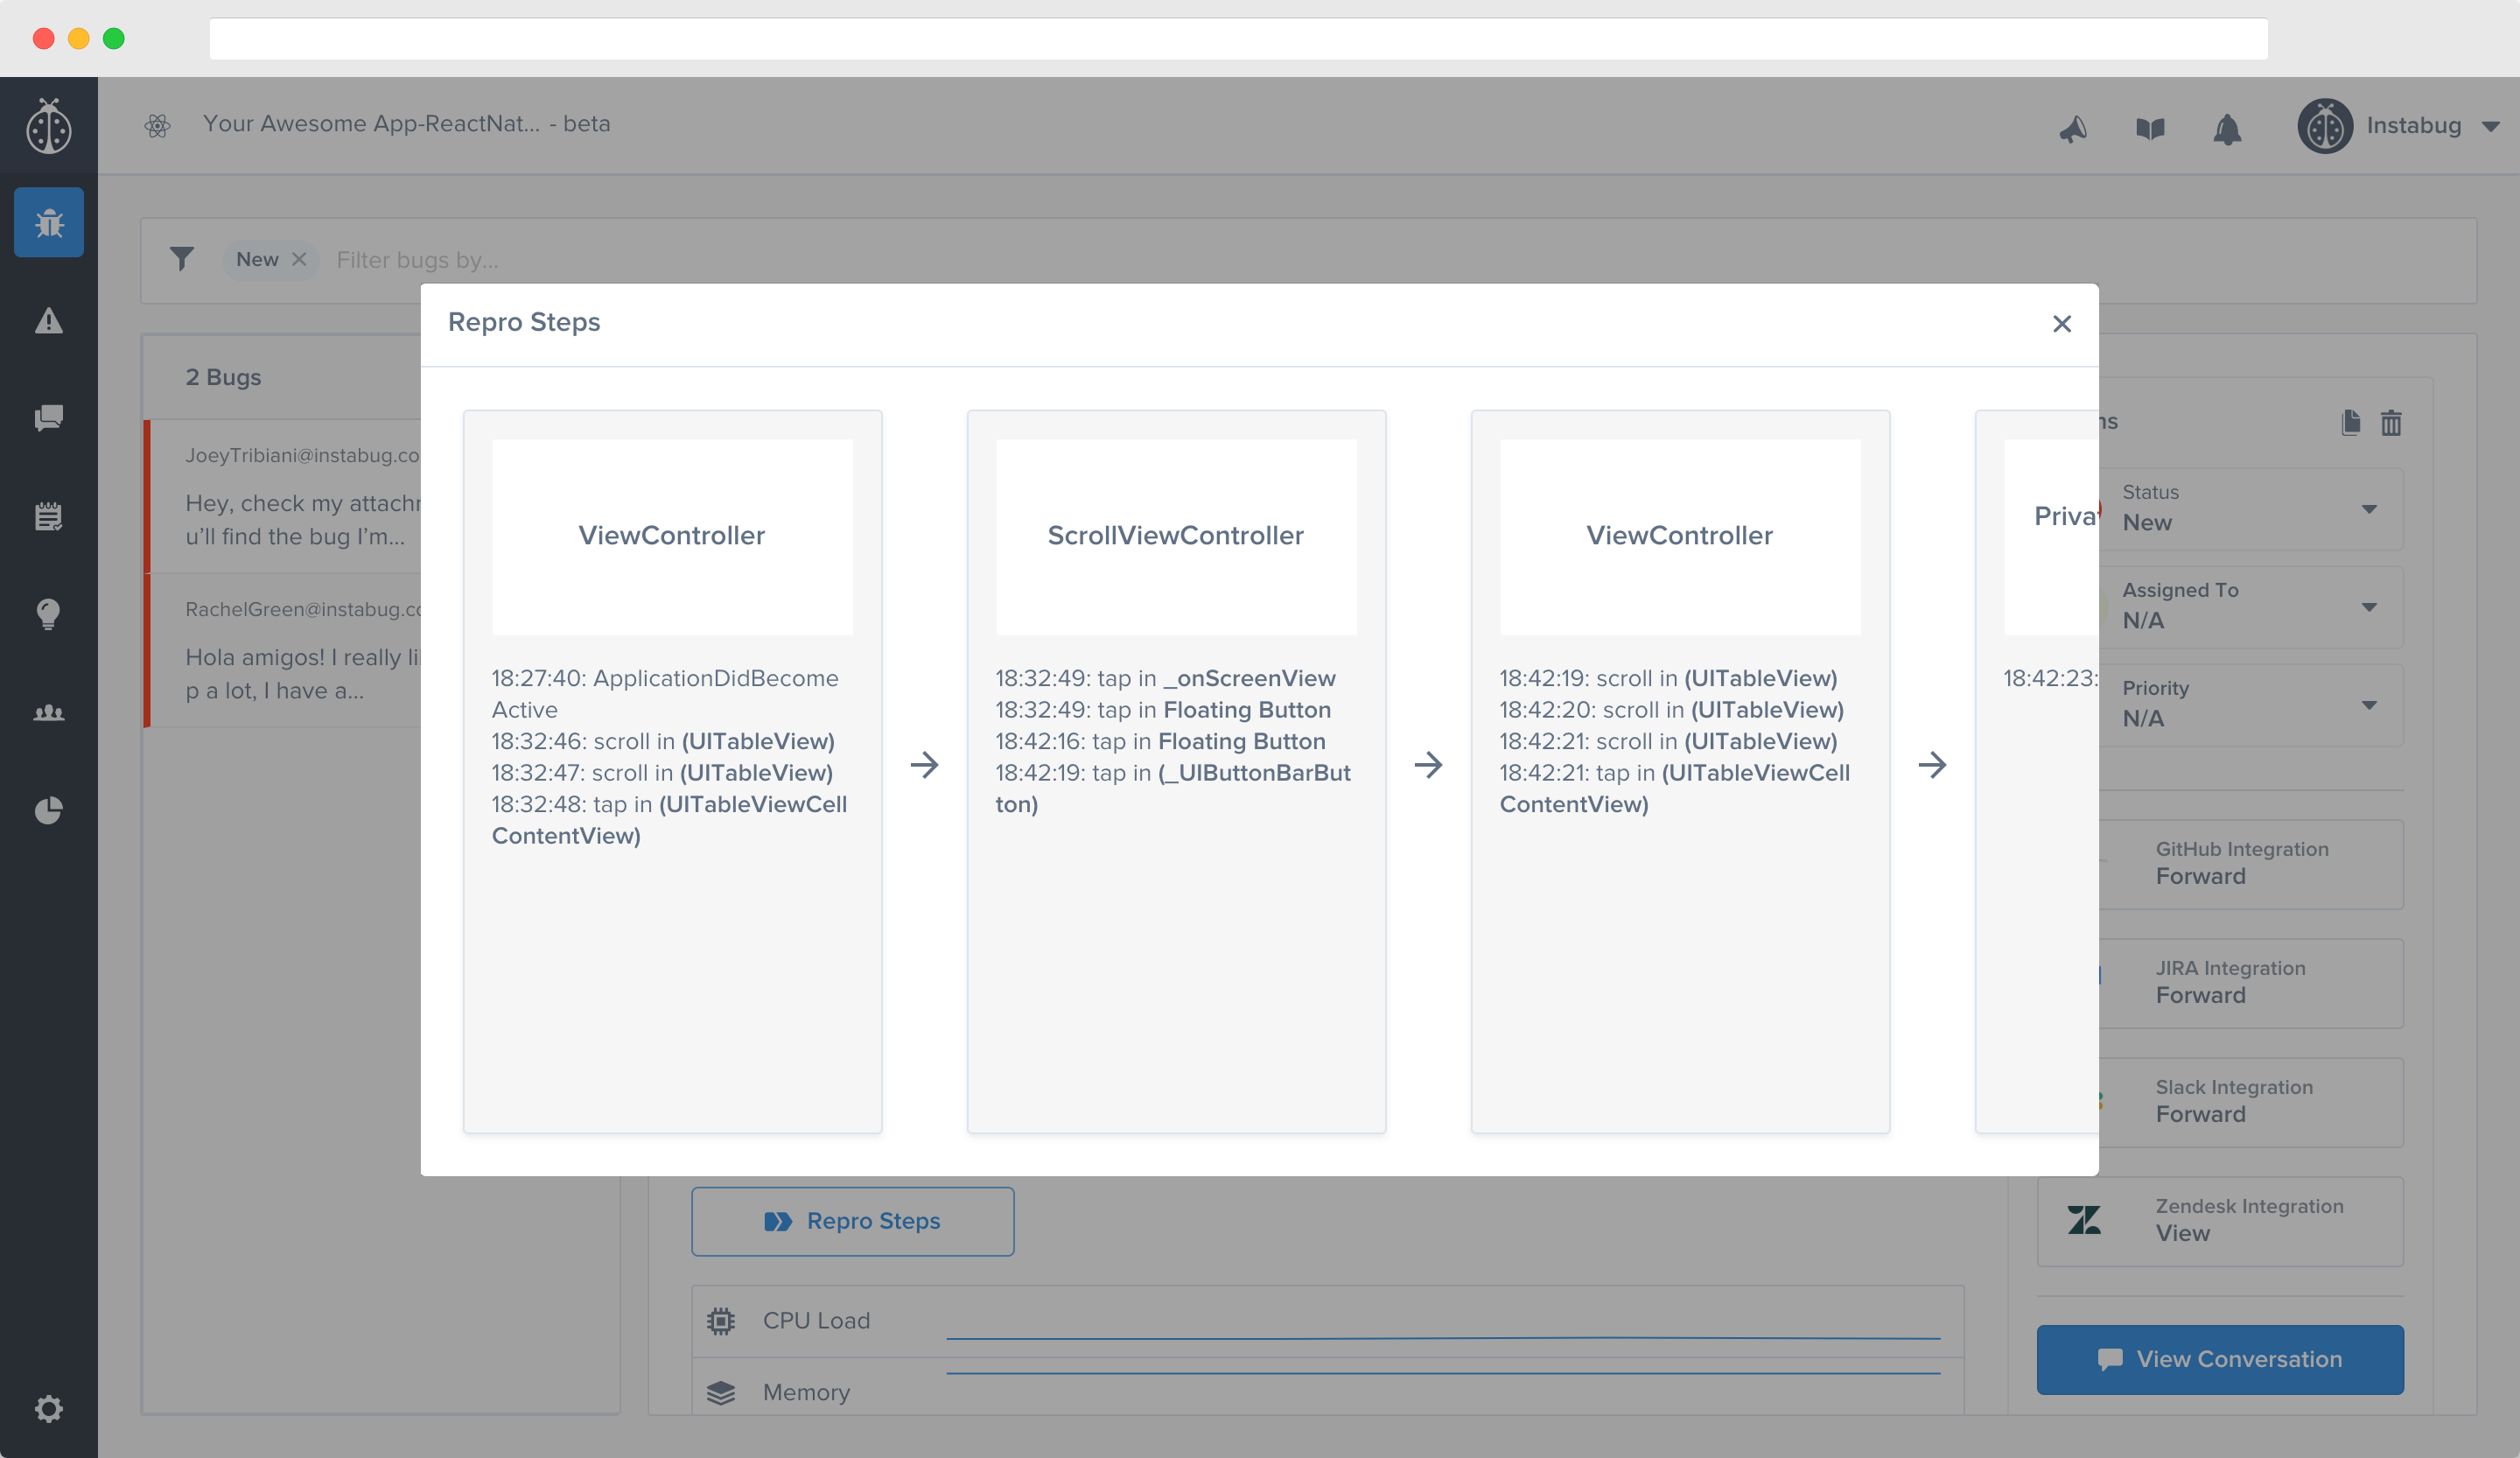 This is what Repro Steps look like in your dashboard.